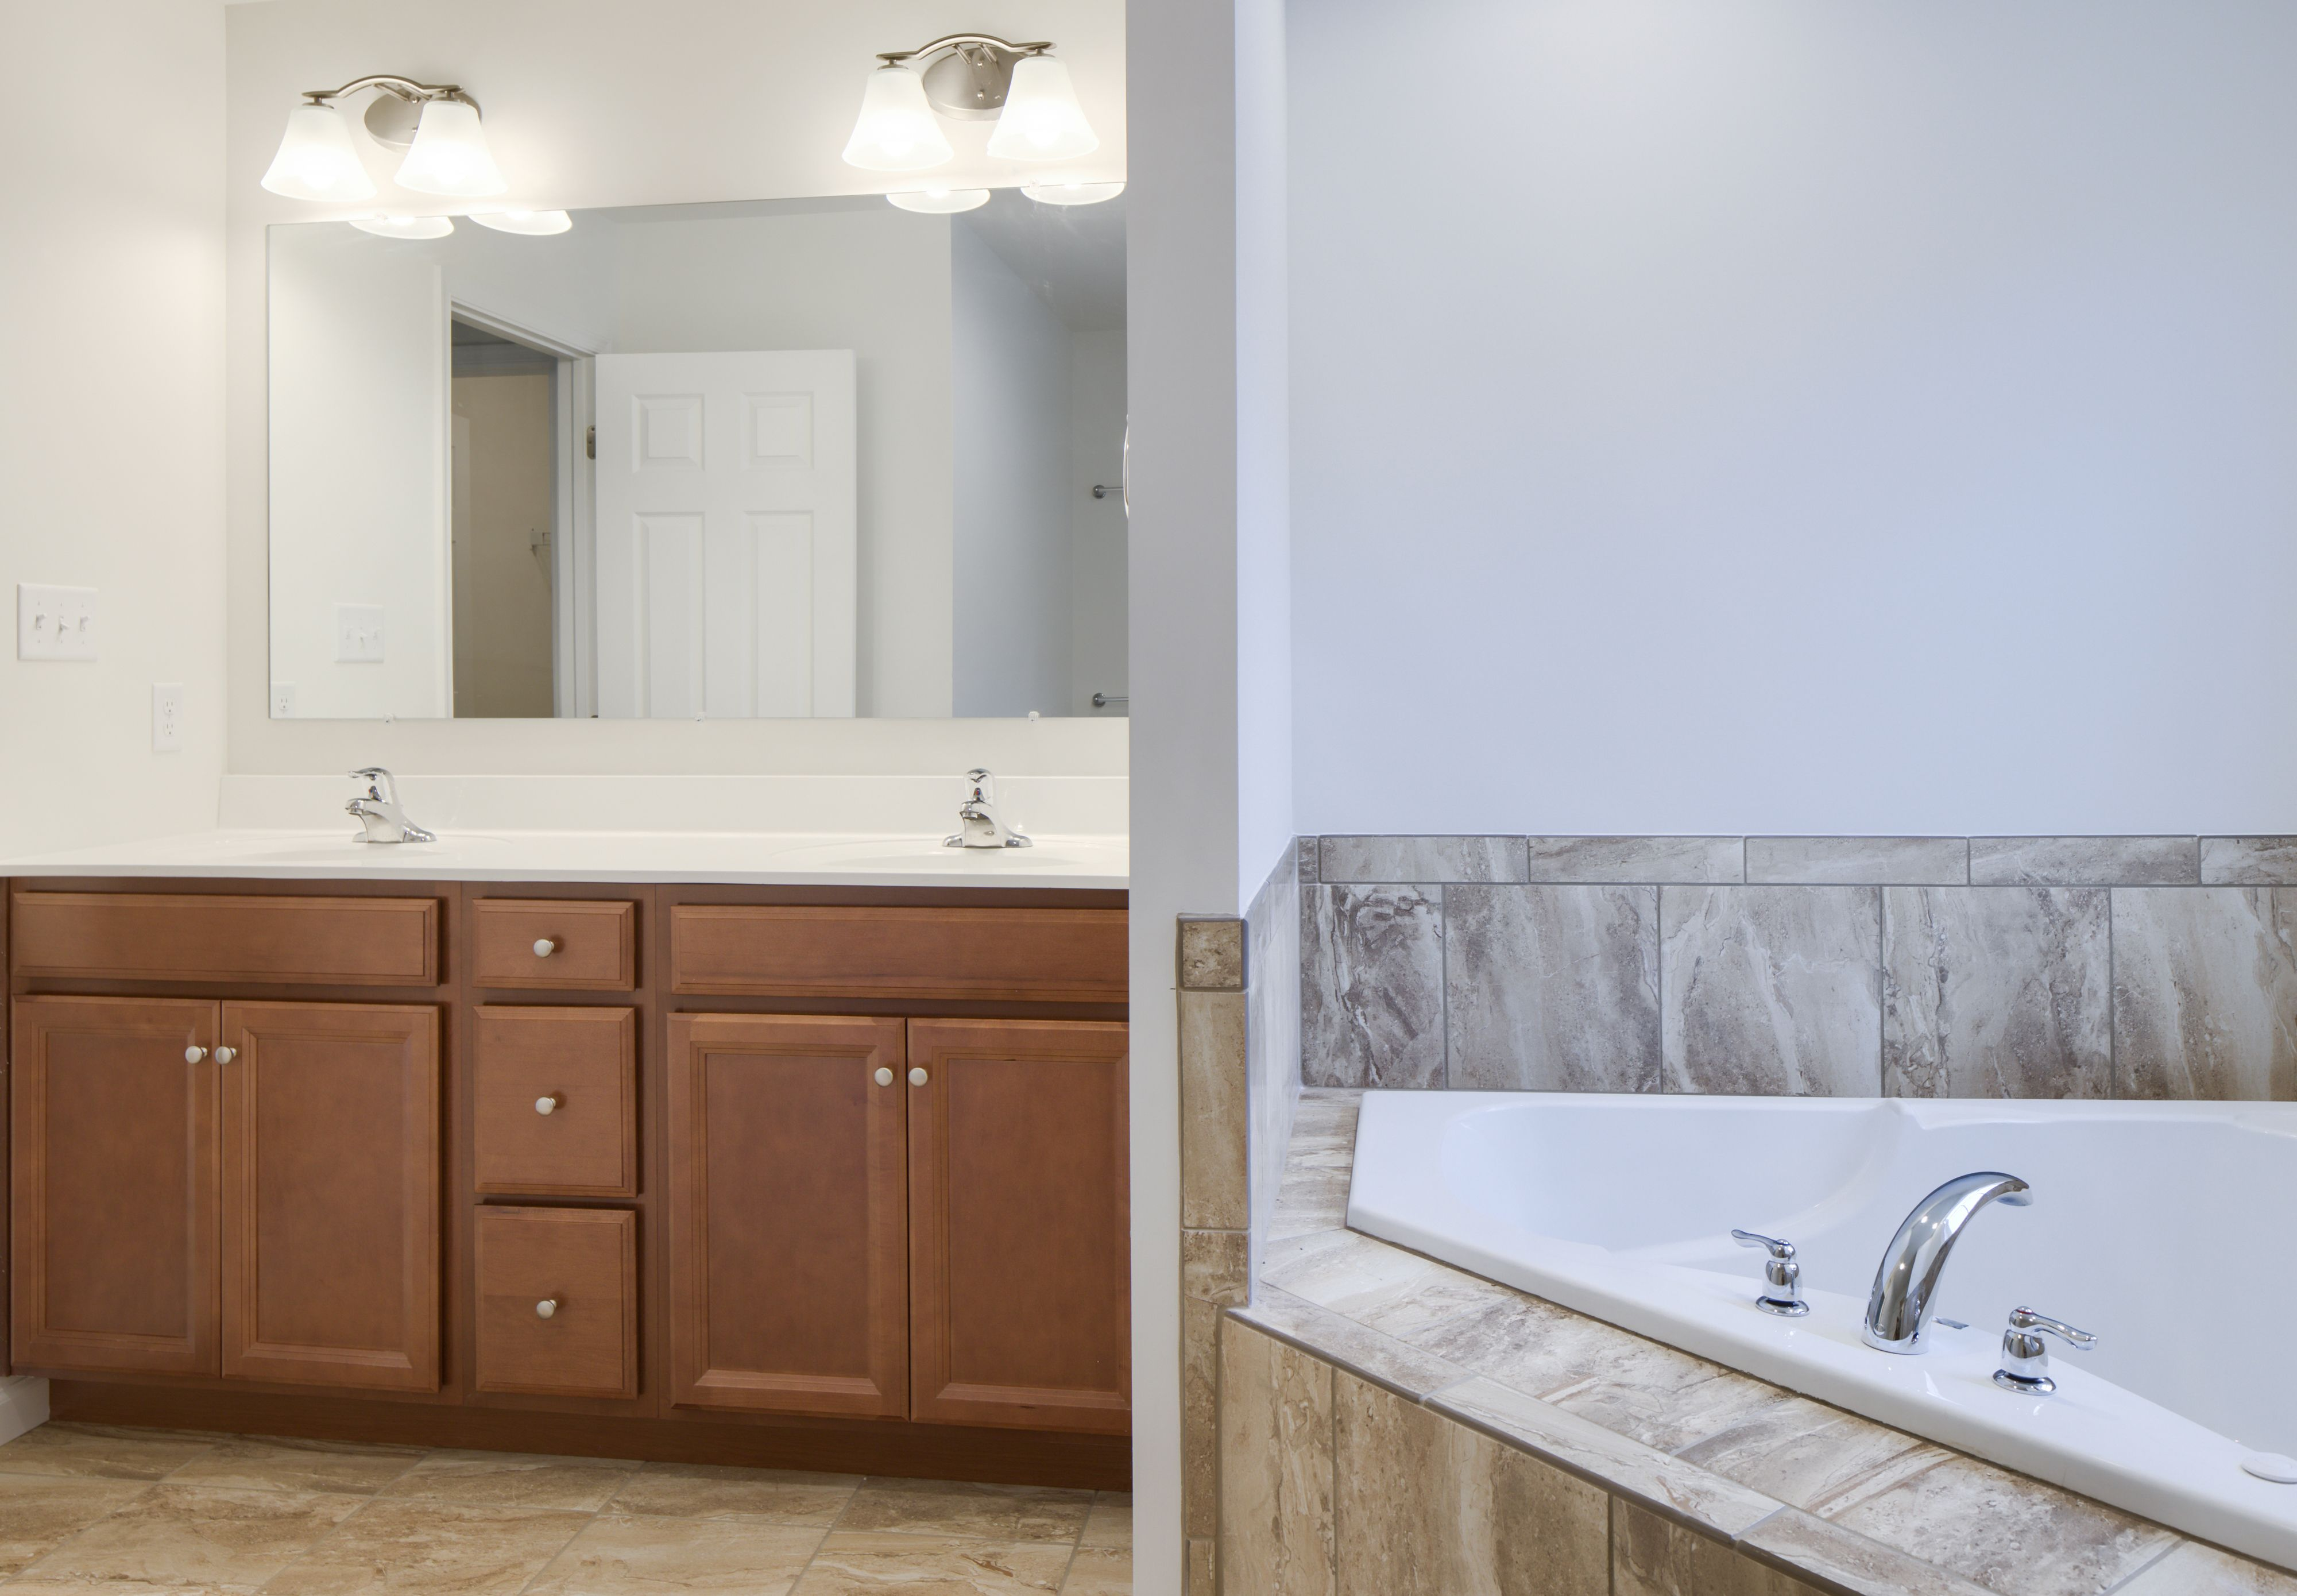 Bathroom featured in the Devonshire Vintage By Keystone Custom Homes in Baltimore, MD